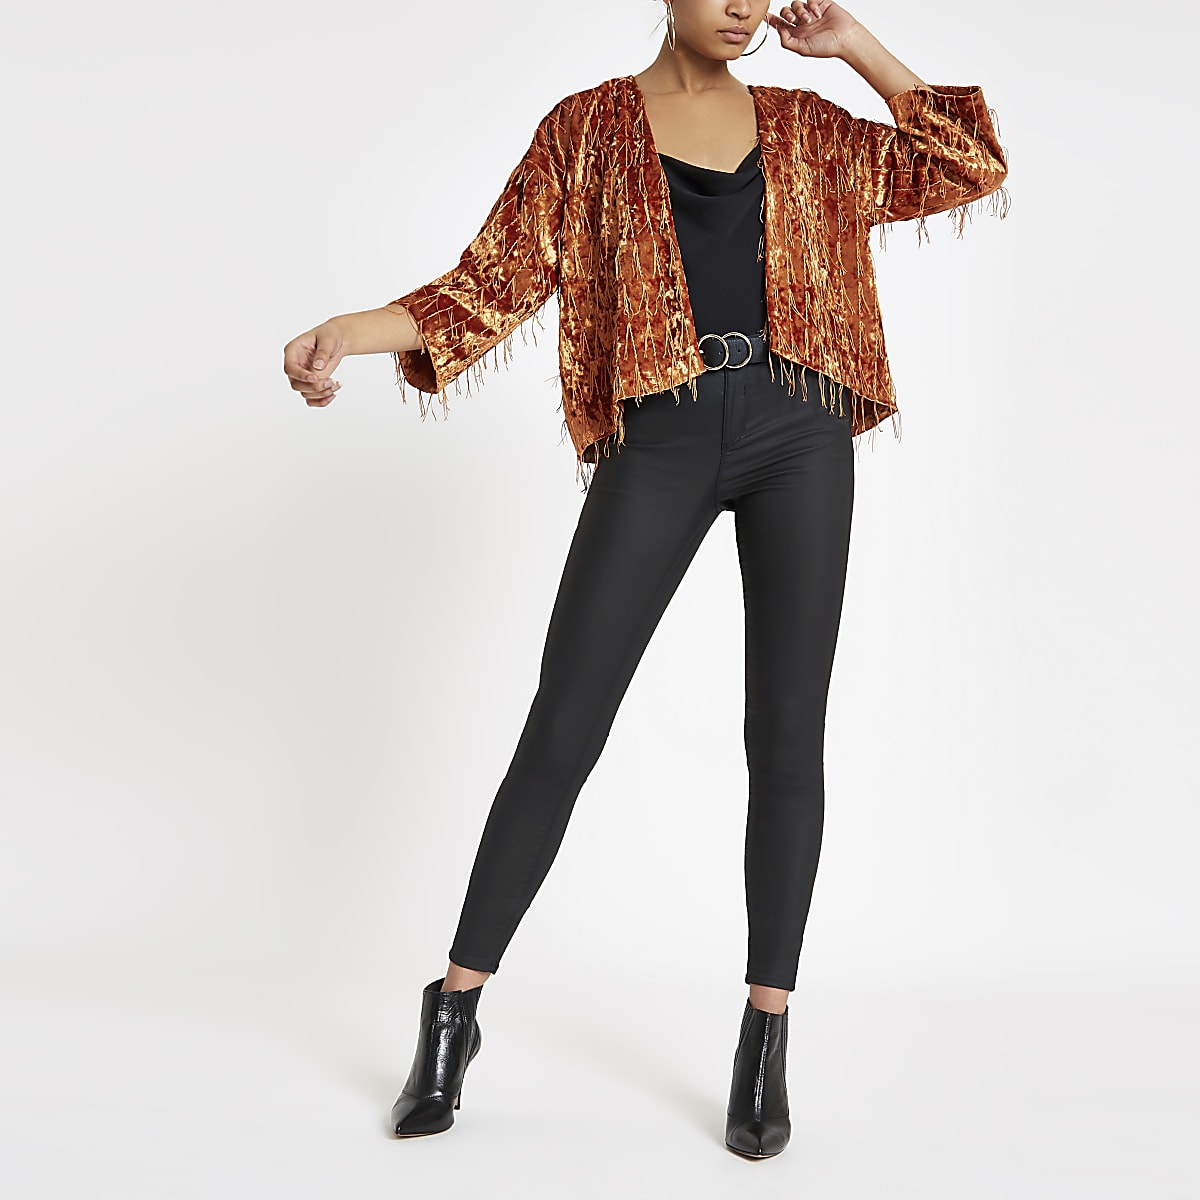 Orange fringe trophy jacket